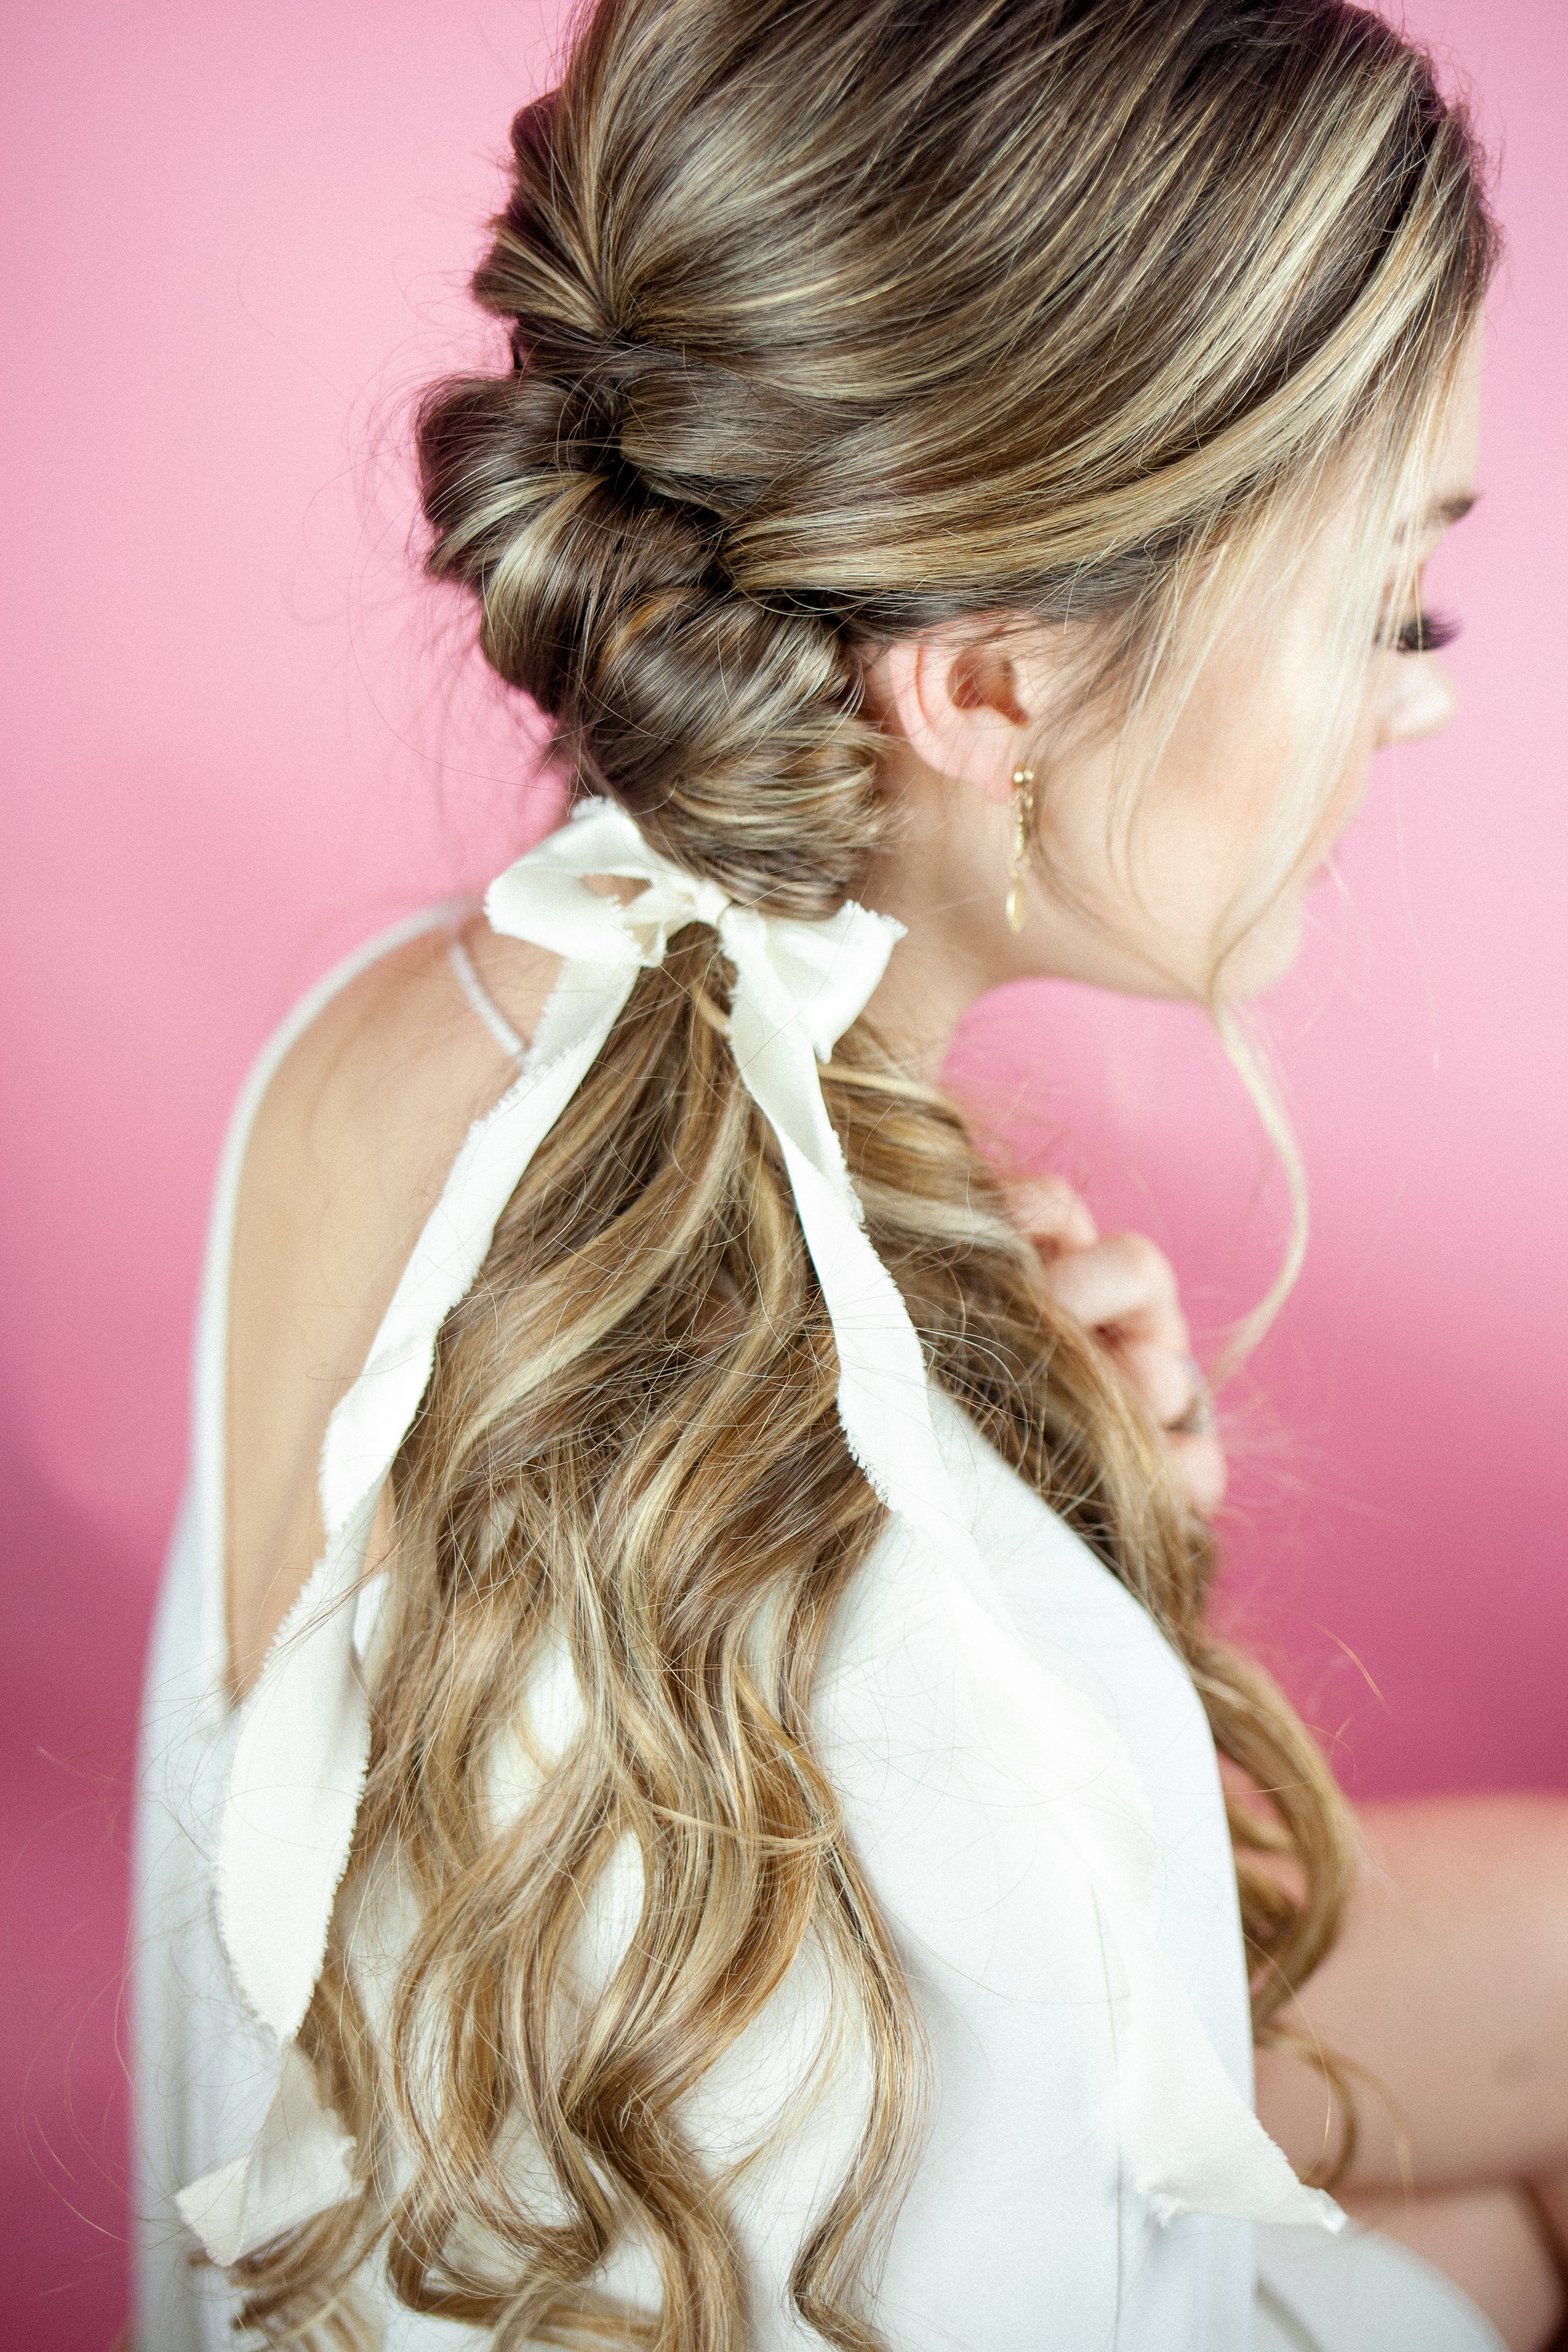 romantic hair(5)2.jpg